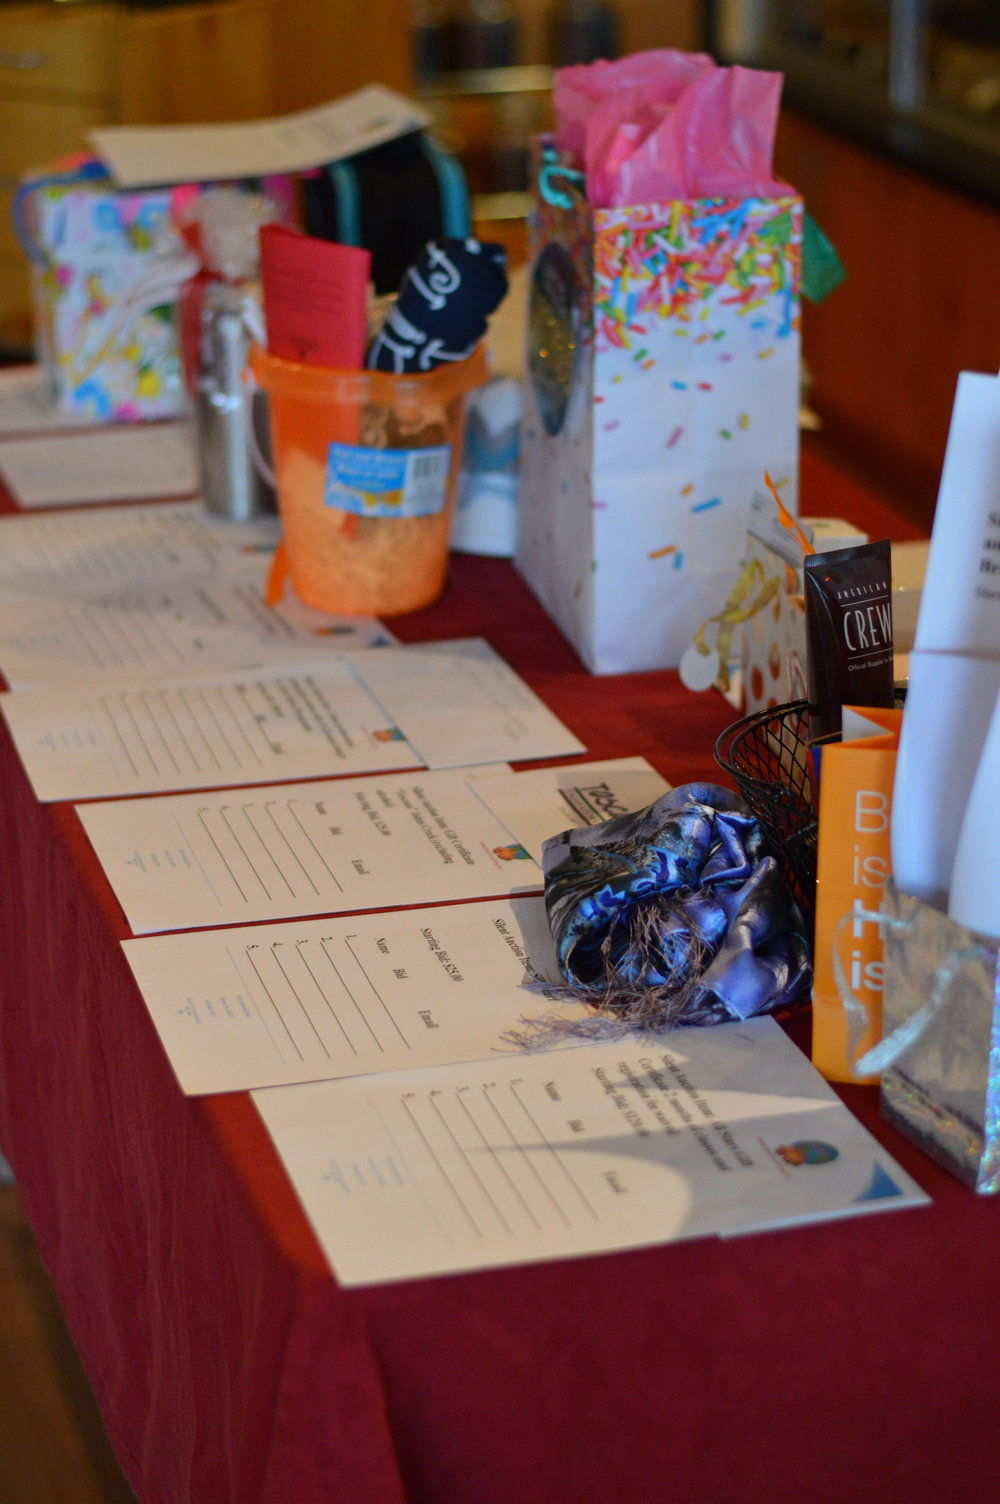 We had PLENTY of great silent auction items to bid on!